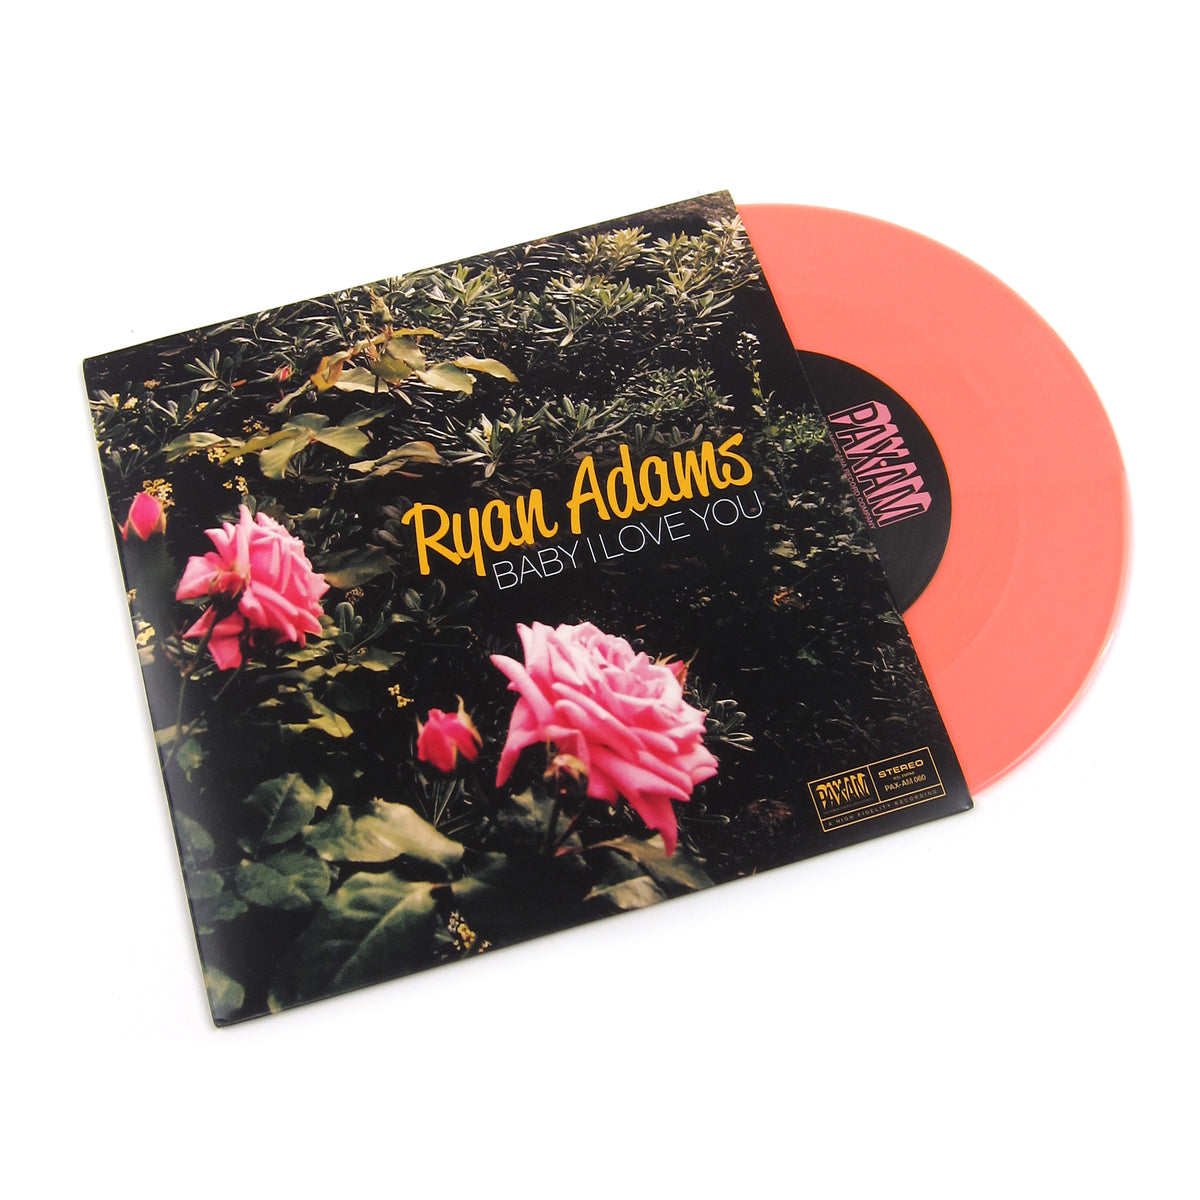 Ryan Adams: Baby I Love You (Colored Vinyl) Vinyl 7""